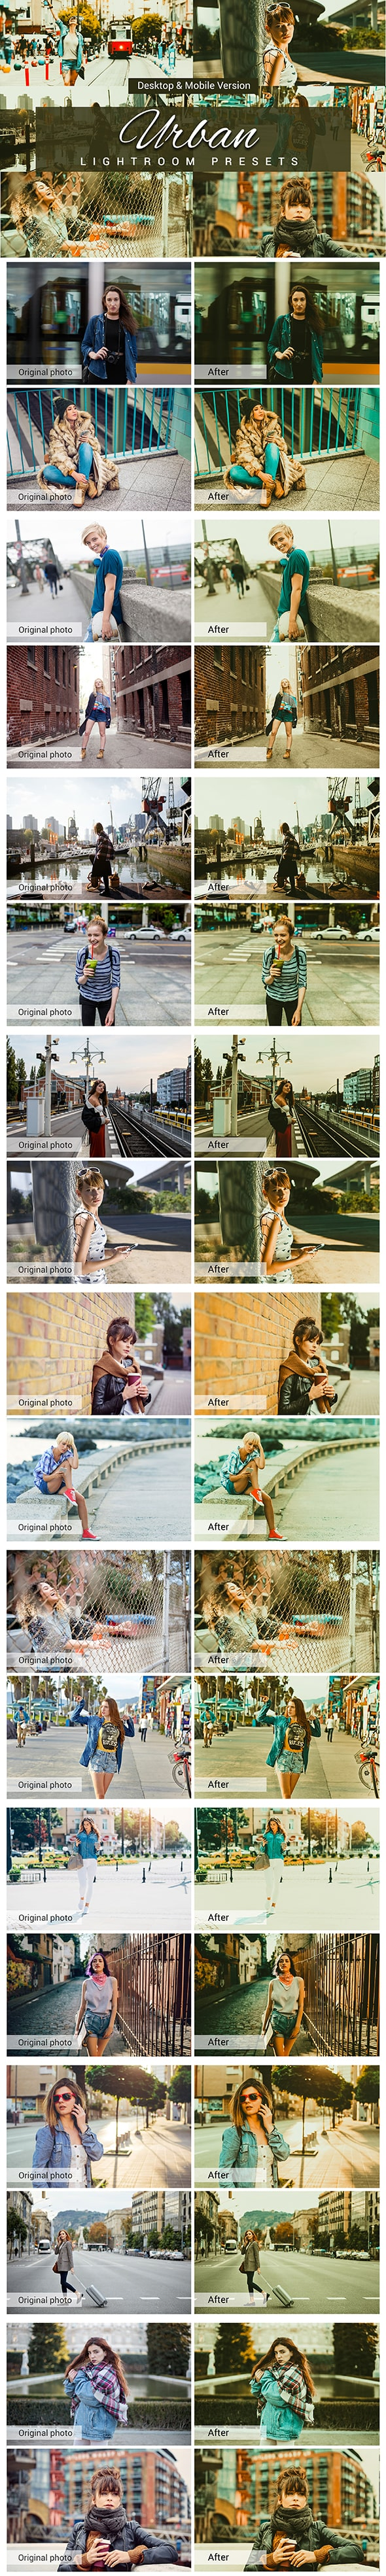 7500 New Complete Bundle Presets Lightroom, Photoshop Actions and Cinematic LUTs - Urban Preview min